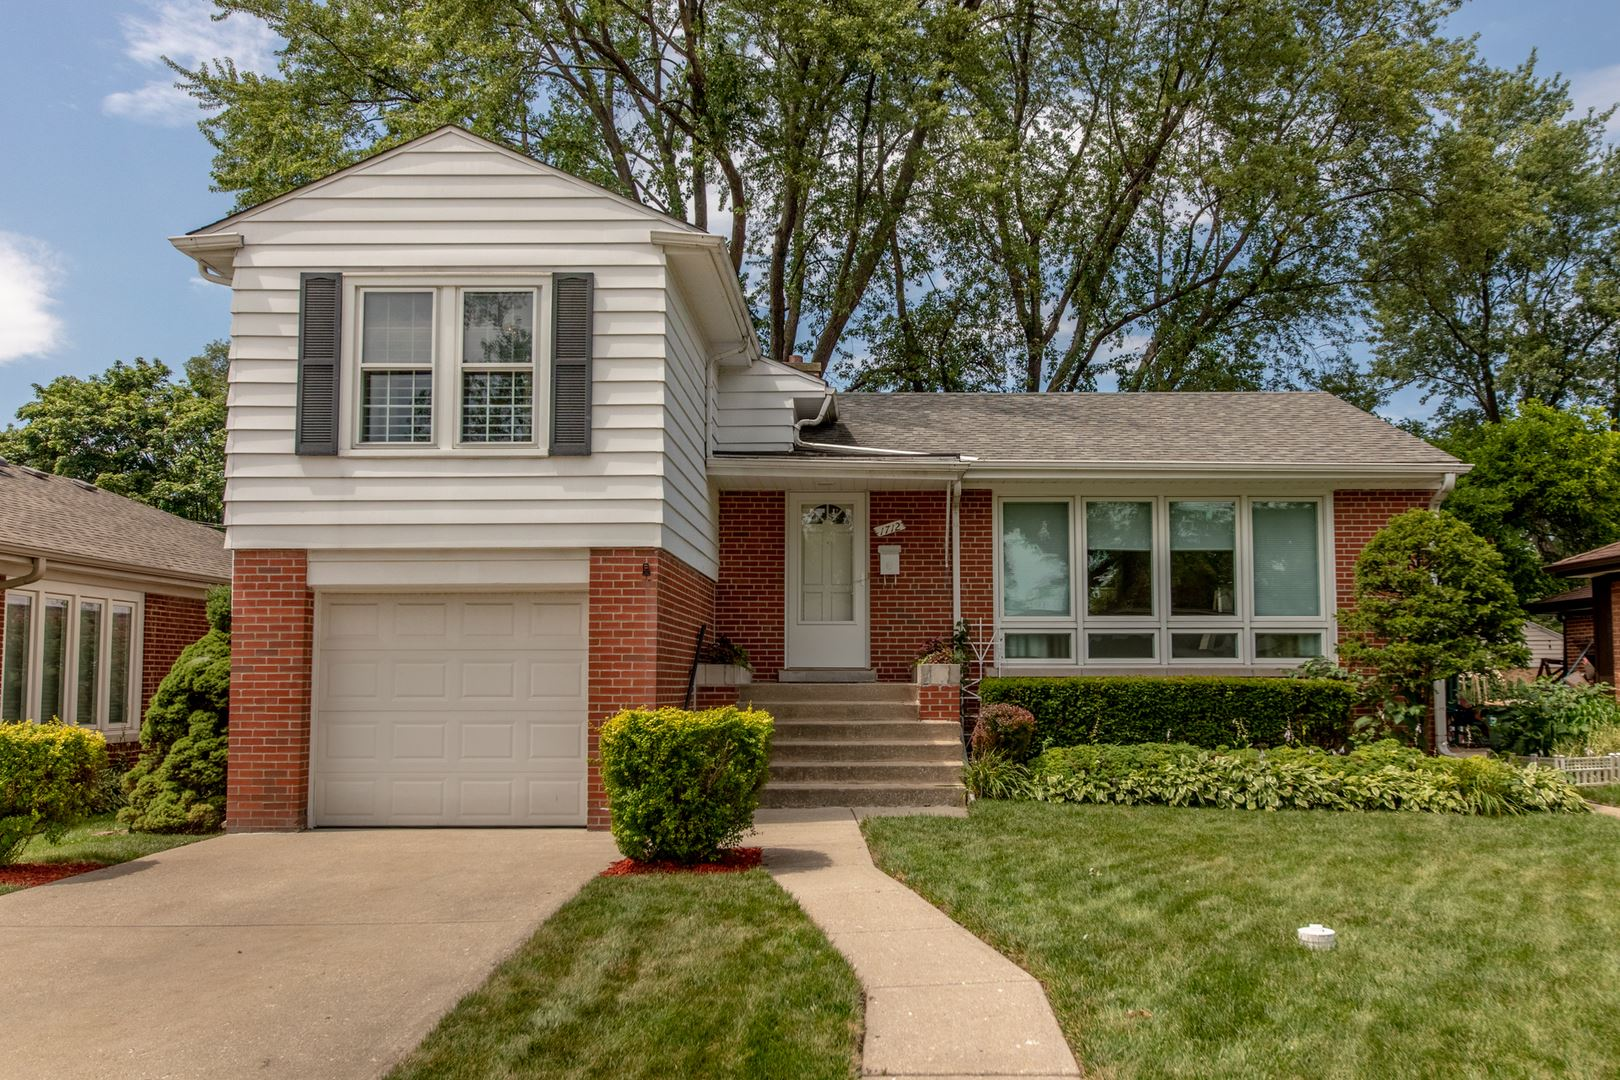 1712 S Washington Avenue, Park Ridge, IL 60068 - #: 10799307